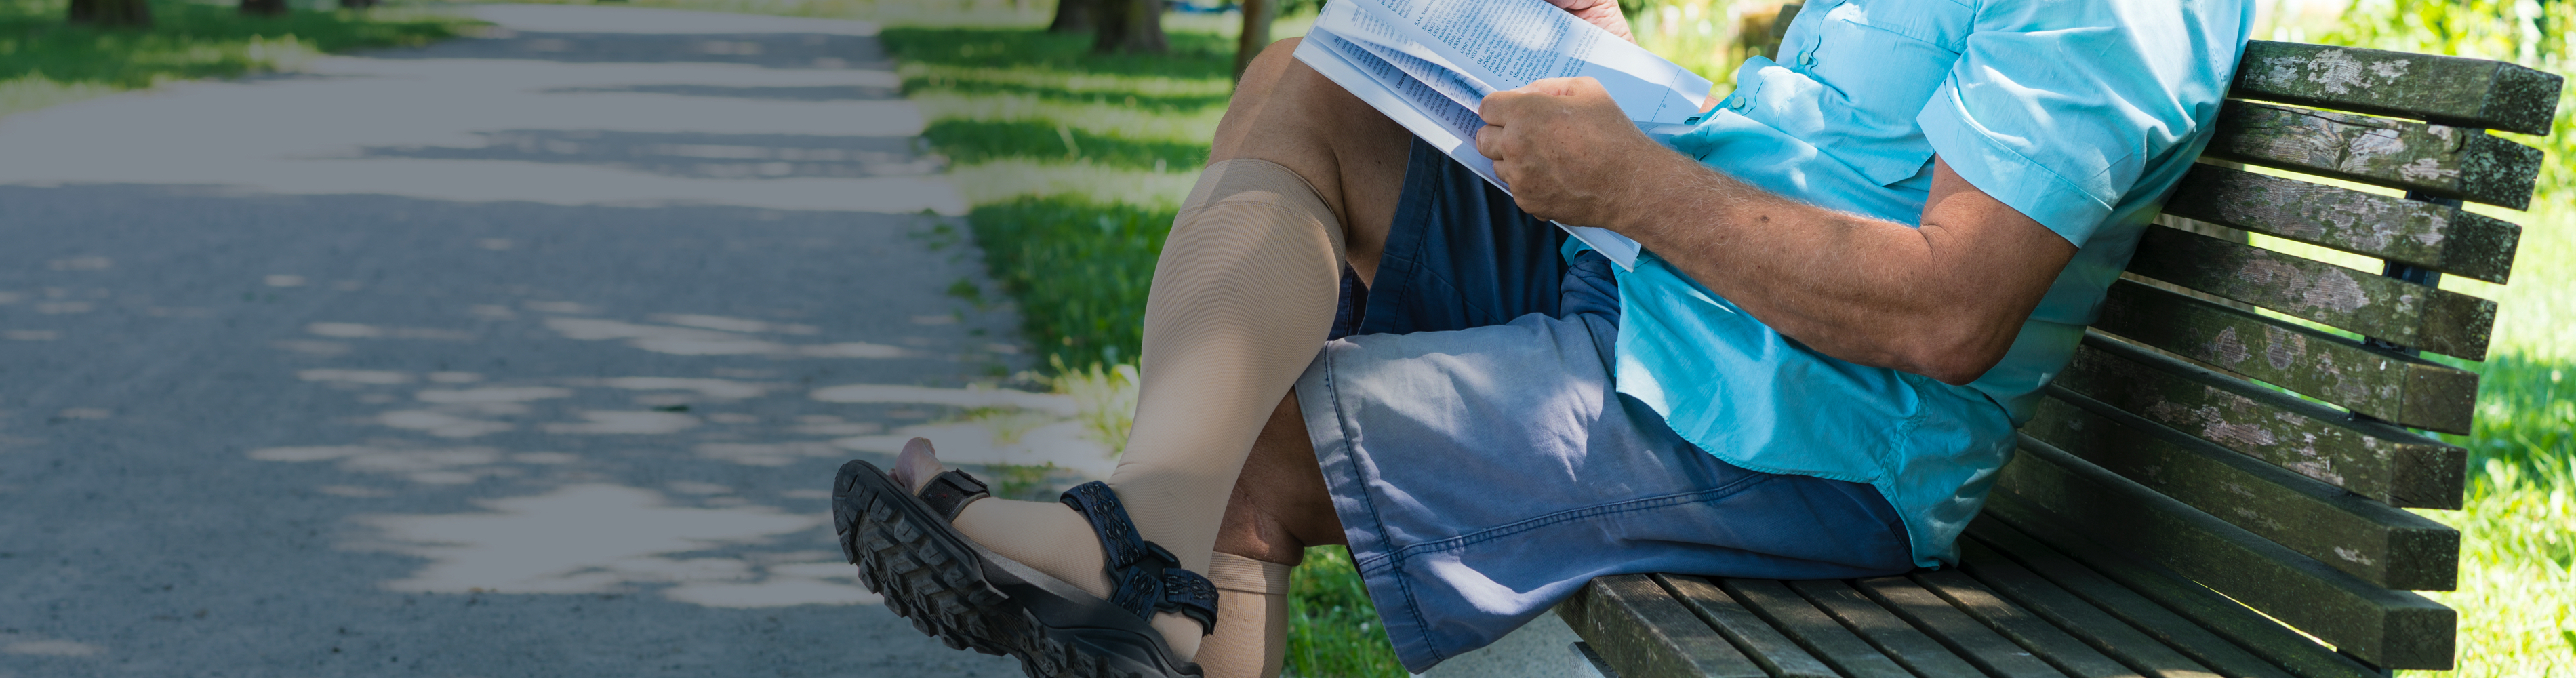 Man sitting on park bench wearing compression stockings